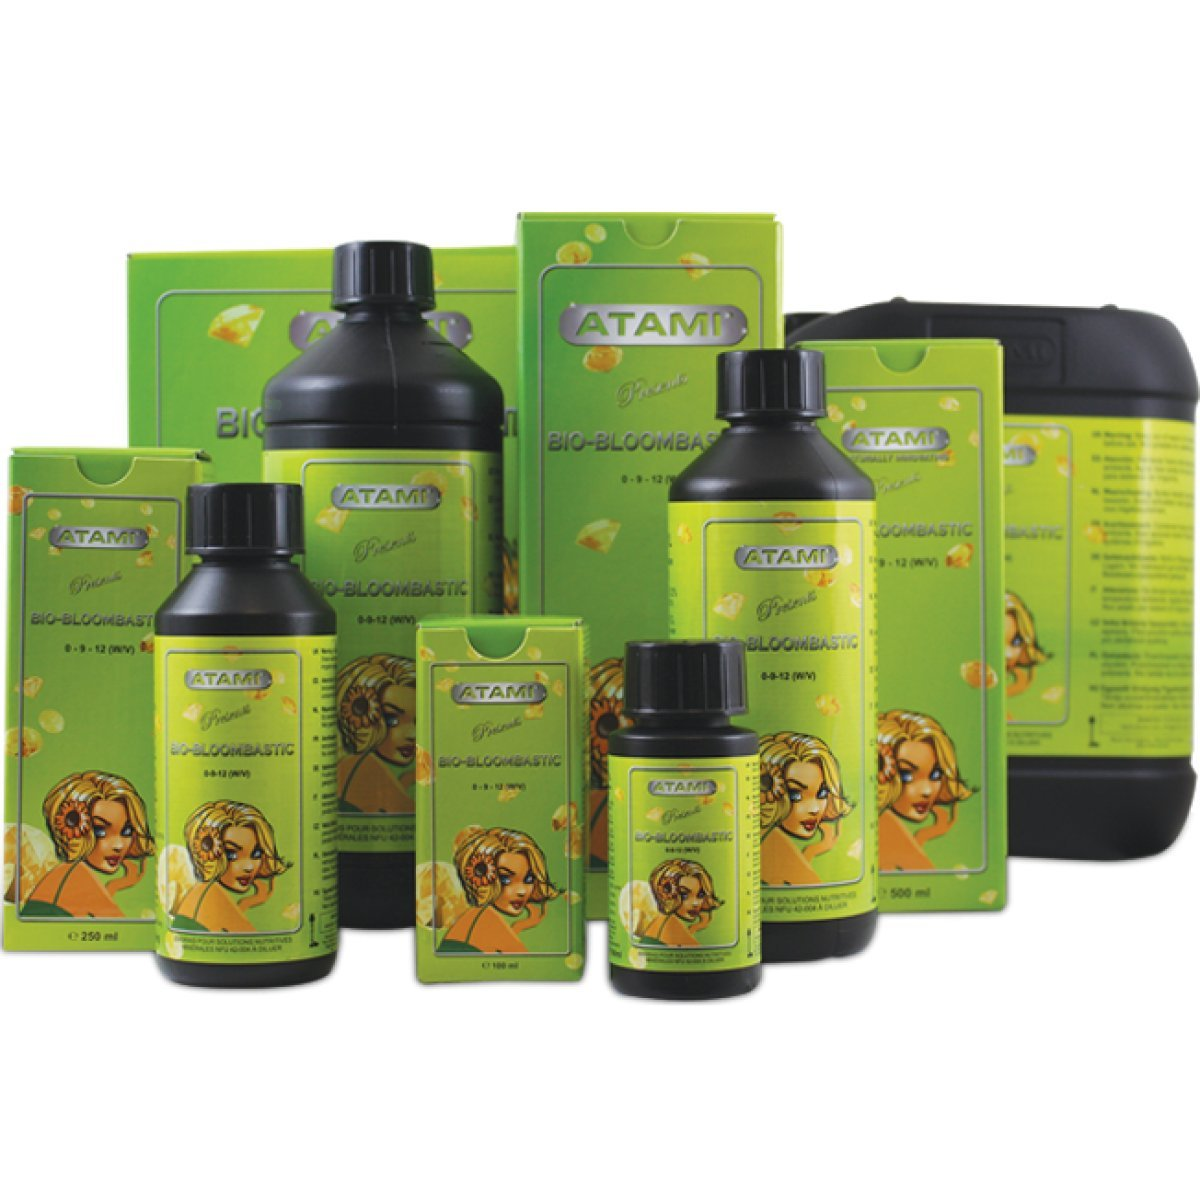 GREENLIGHT GUYS Atami Bcuzz Bio Bloombastic 500Ml